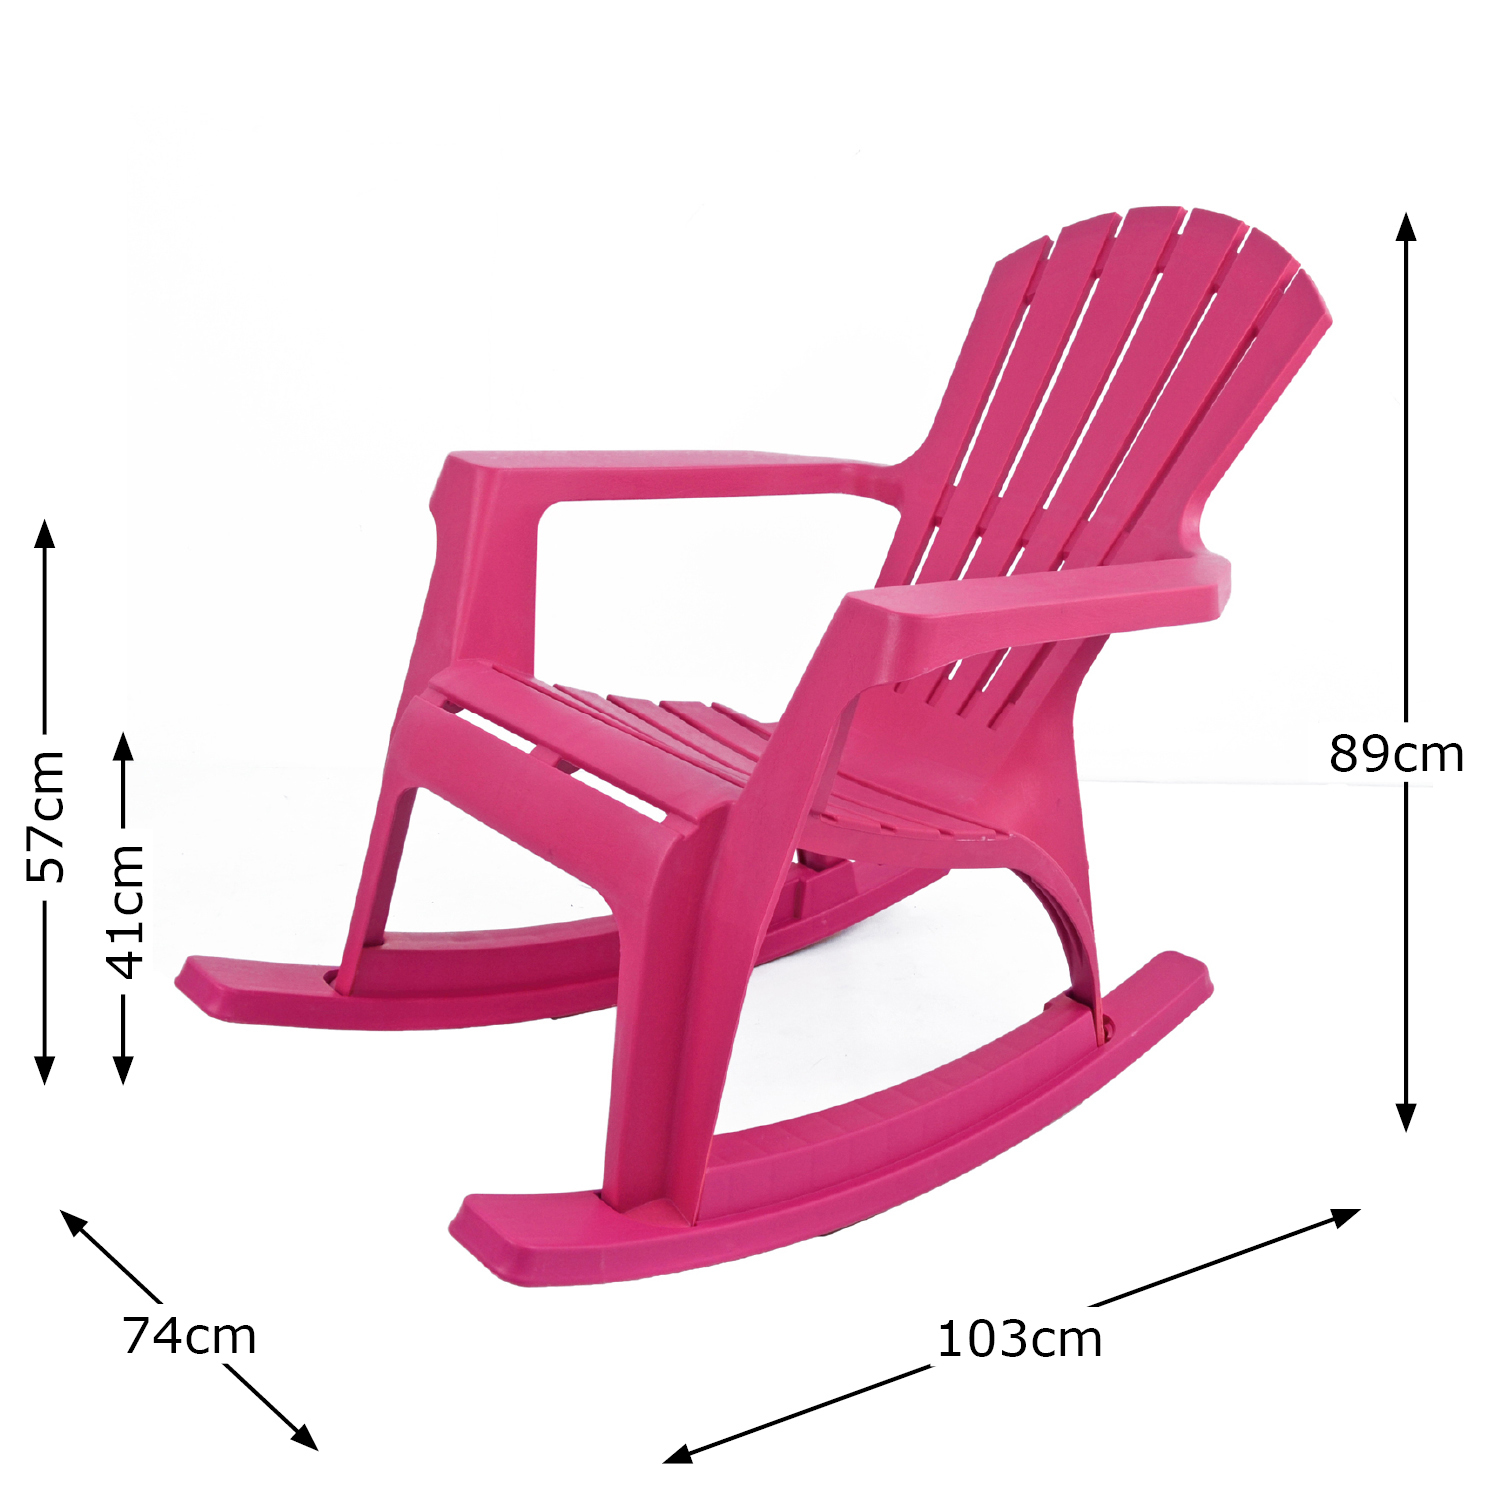 ANDRIA ROCKING CHAIR PINK DIMENSION MS1